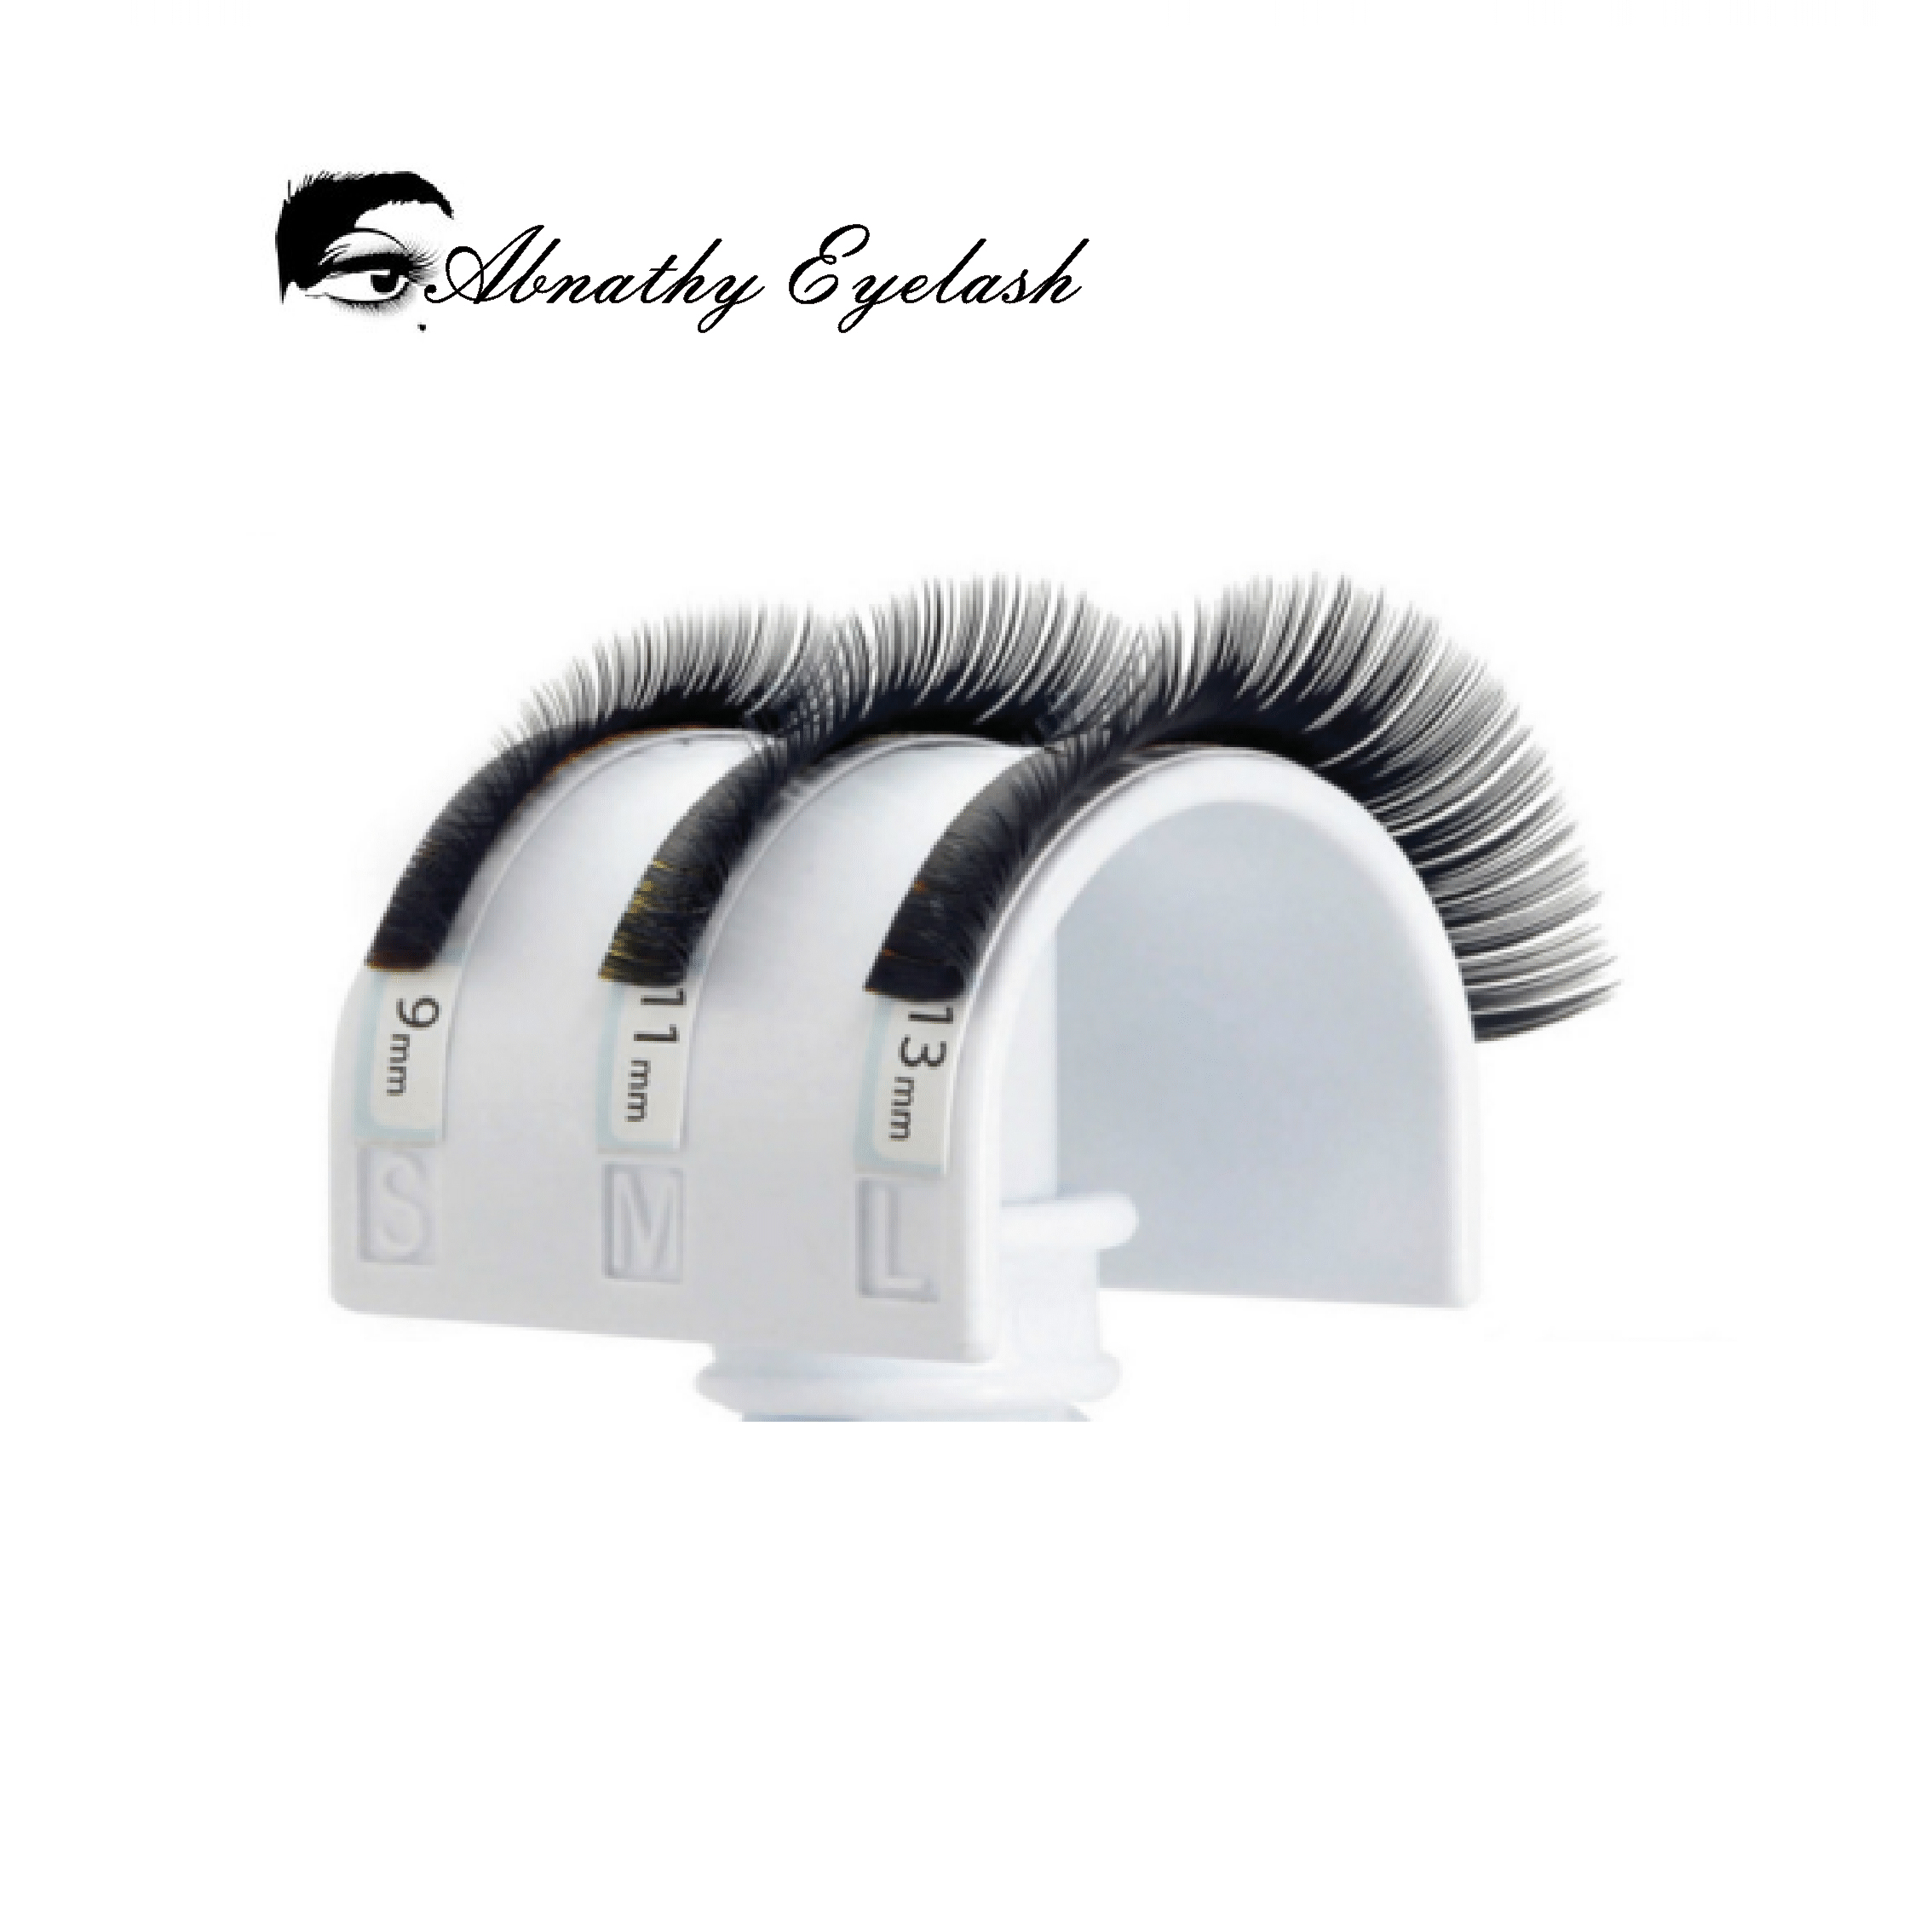 0 05 0 25 8 14mm J B C D Eyelashes extension false lashes individual mink eyelashes 1 pcs natural eyelashes False eyelash in False Eyelashes from Beauty Health